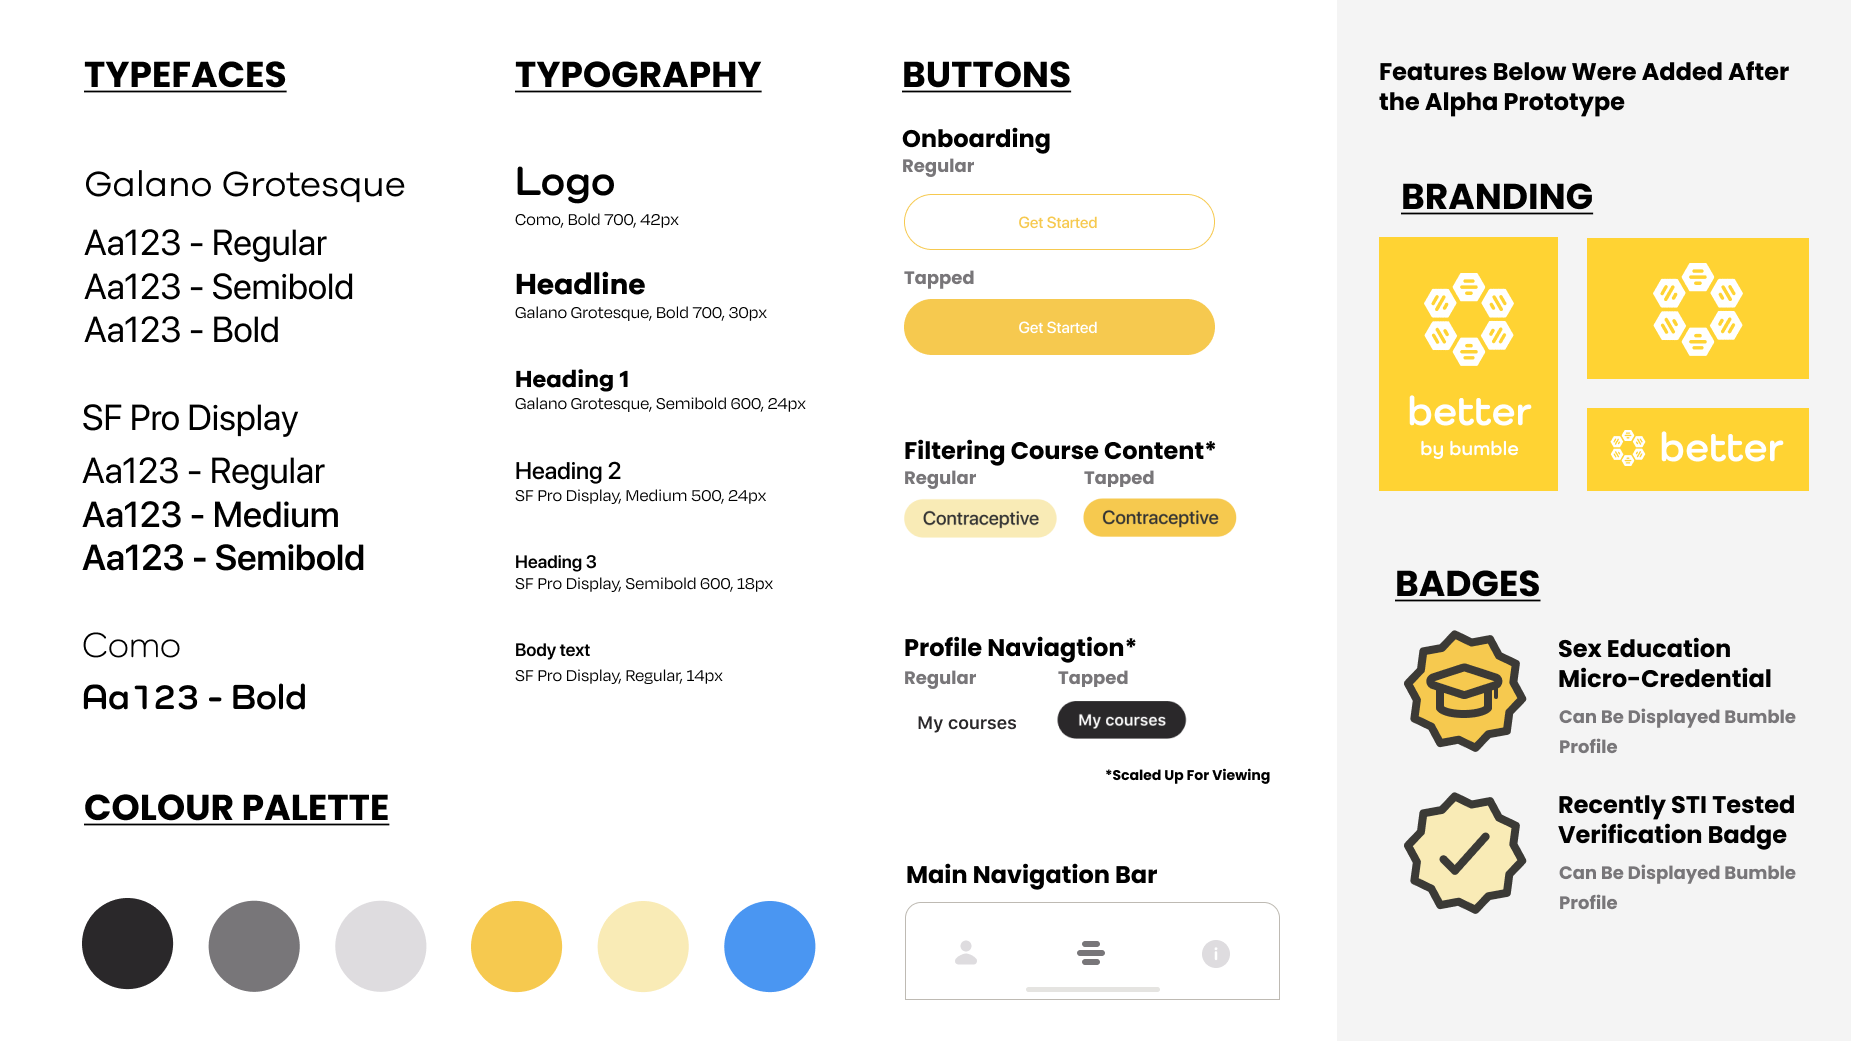 Style guide displaying typeface and typography choices, colour palette, buttons, branding, and badges.